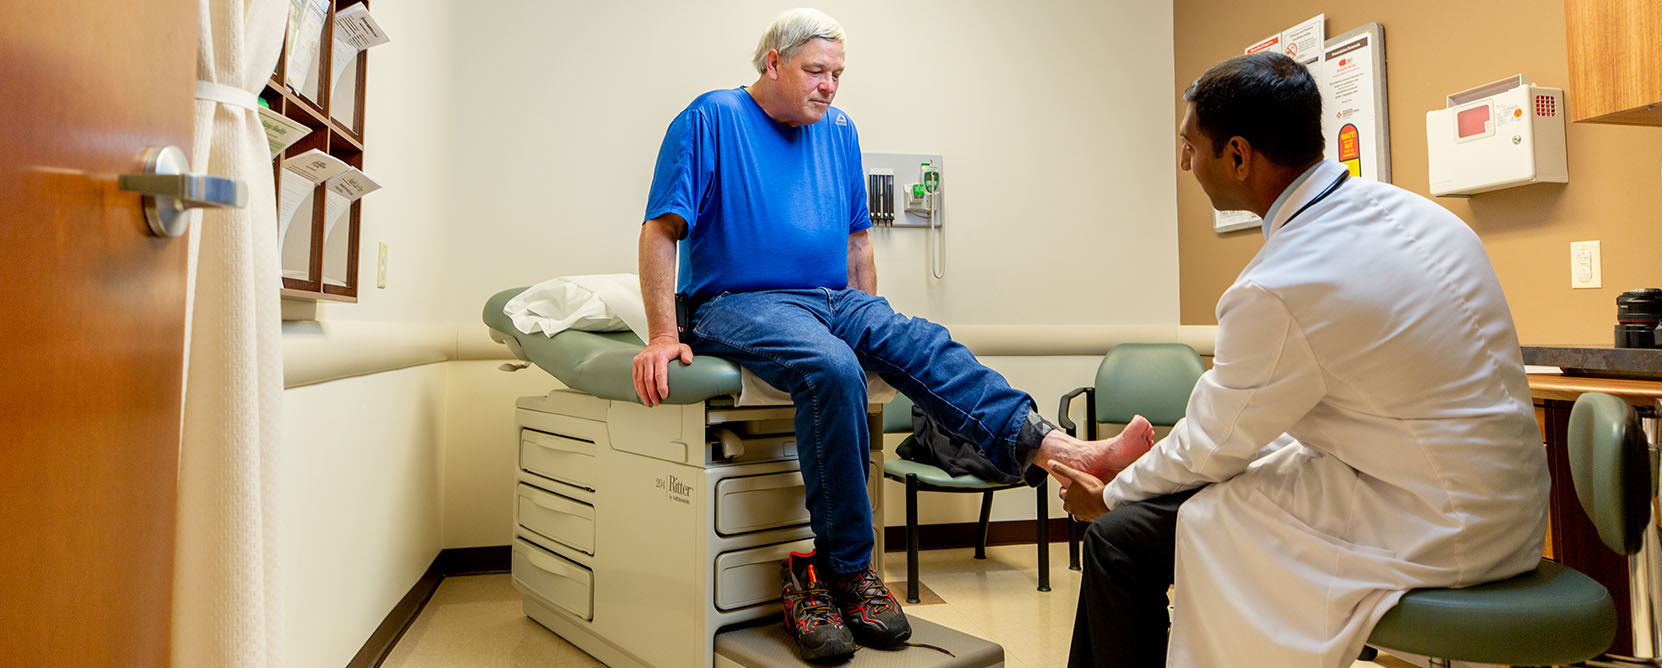 Older adult patient receives a foot exam by a doctor.